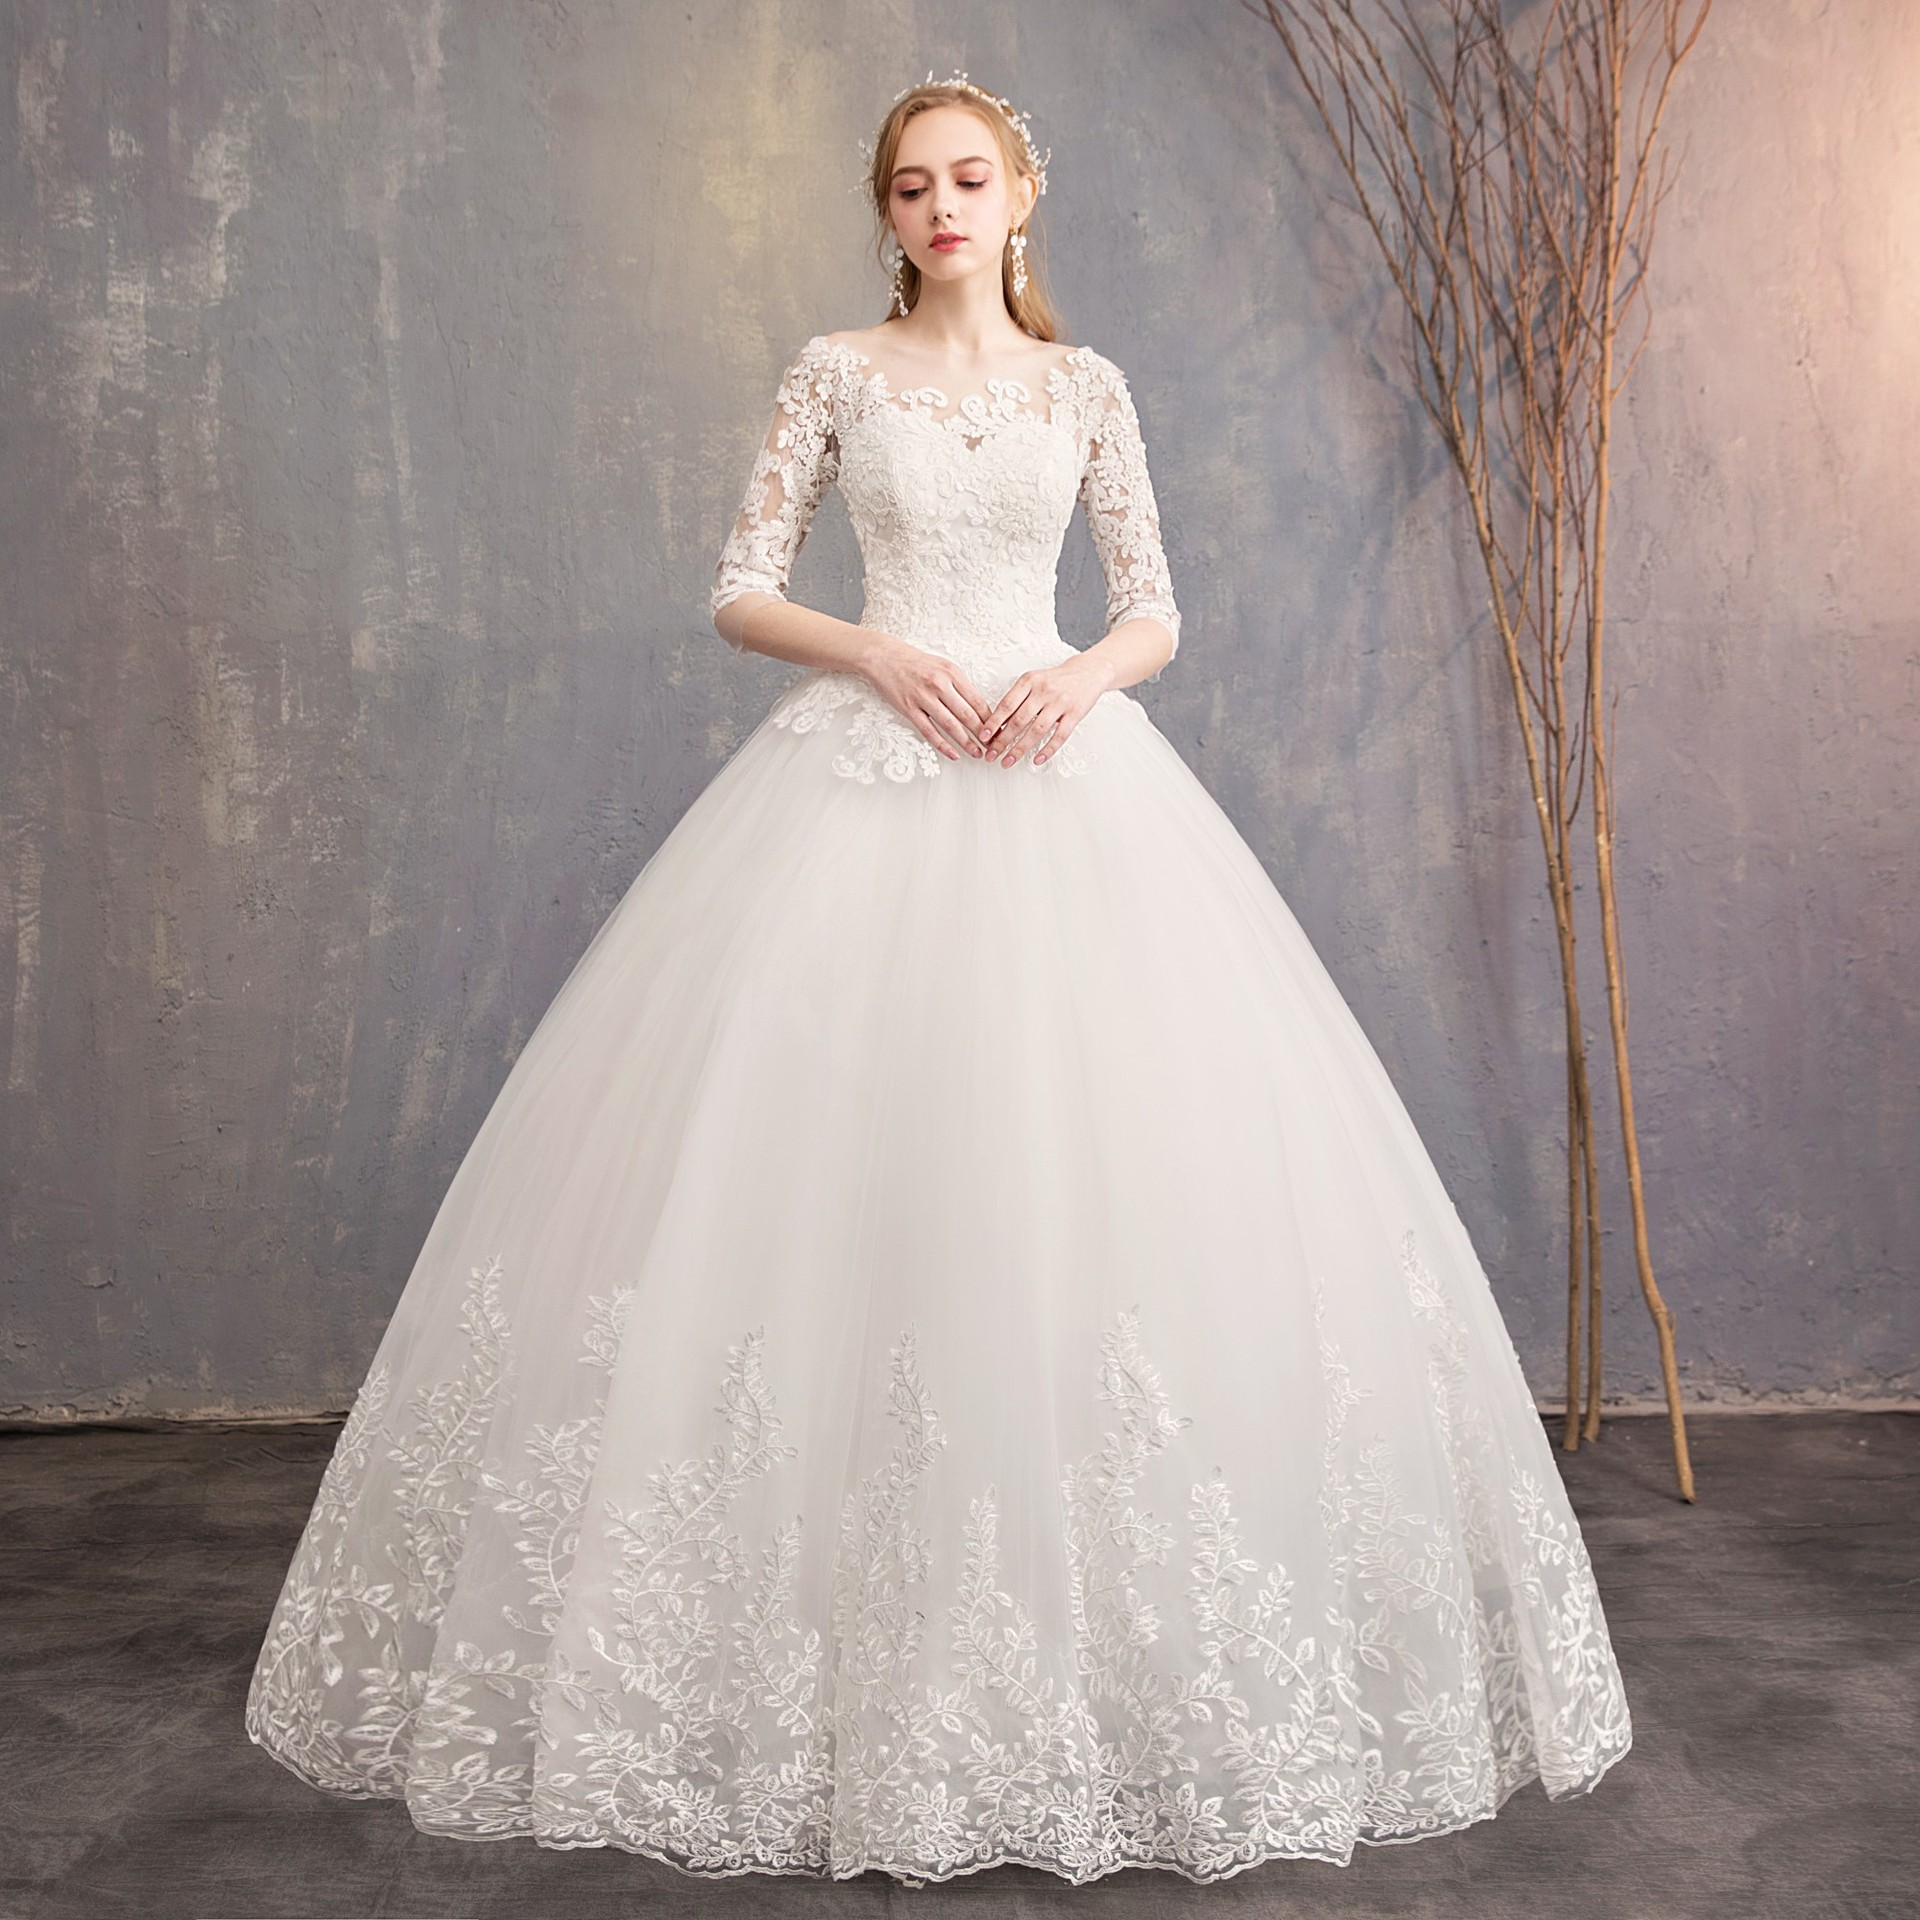 2019 New Arrival Do Dower Half Sleeve Wedding Dress Lace Ball